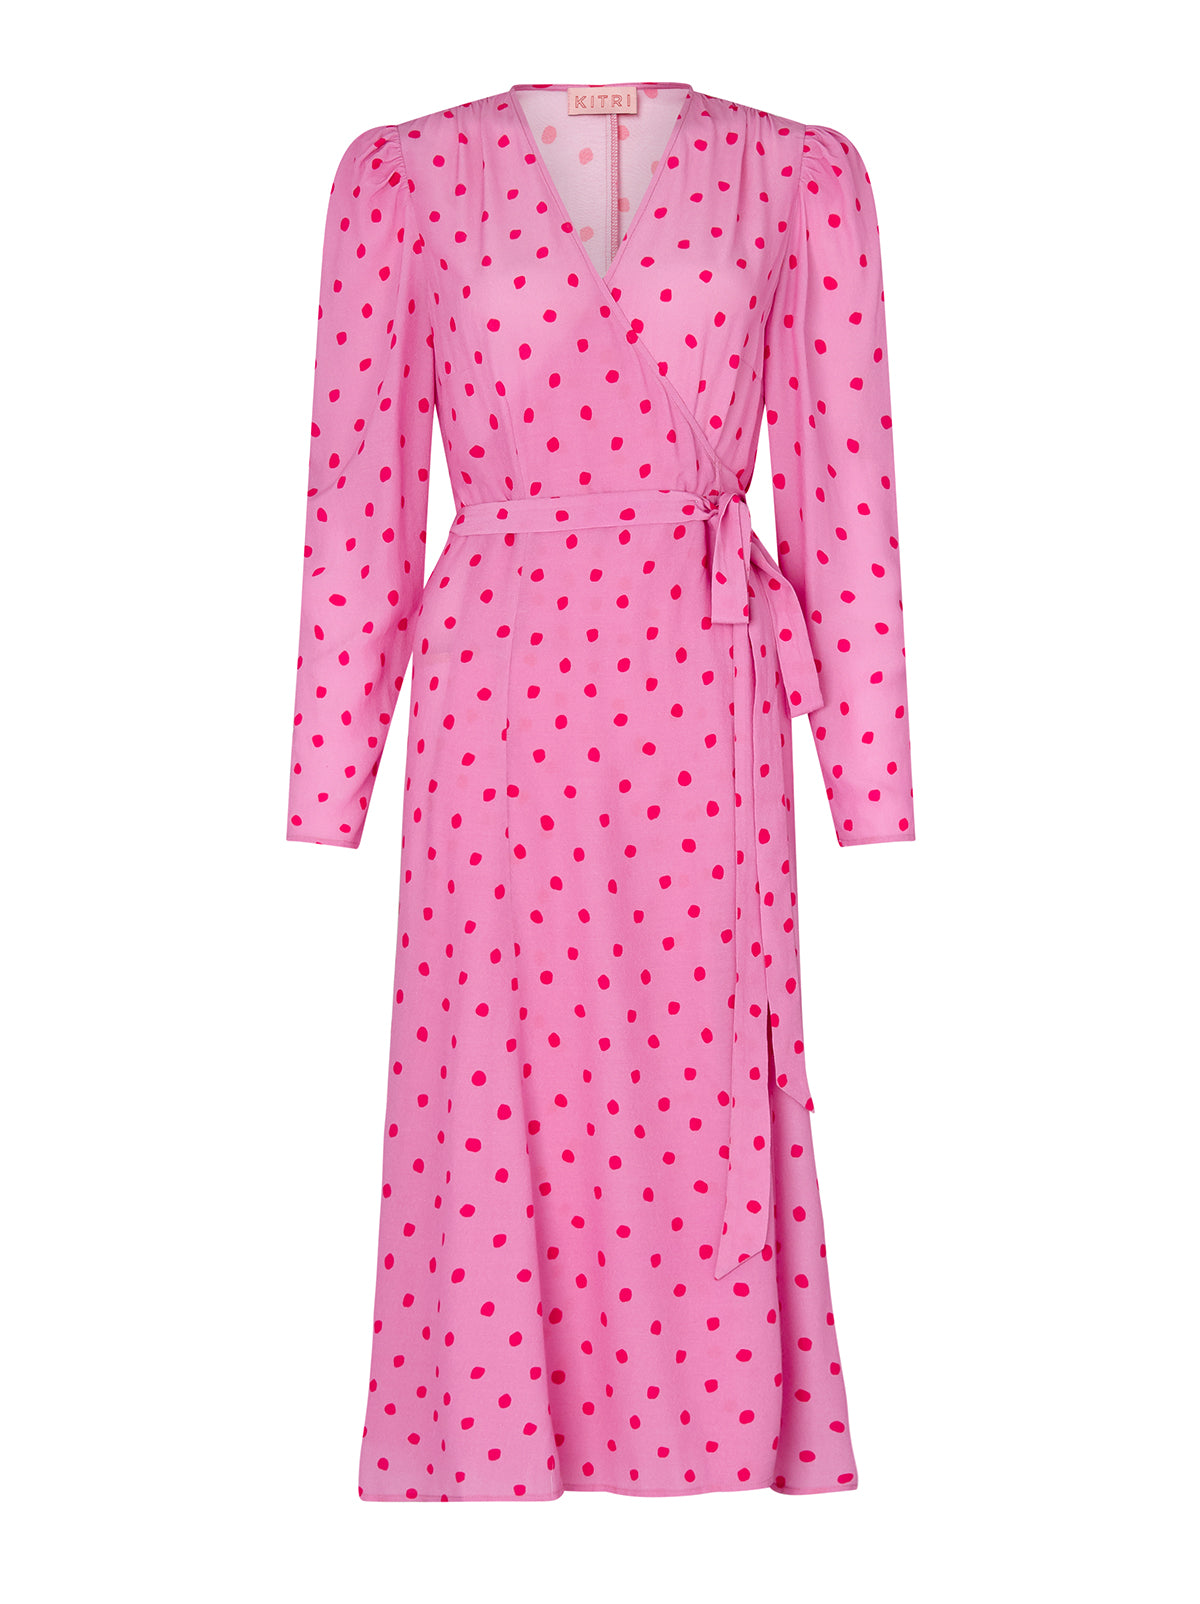 Stephanie Pink Polka Dot Wrap Dress